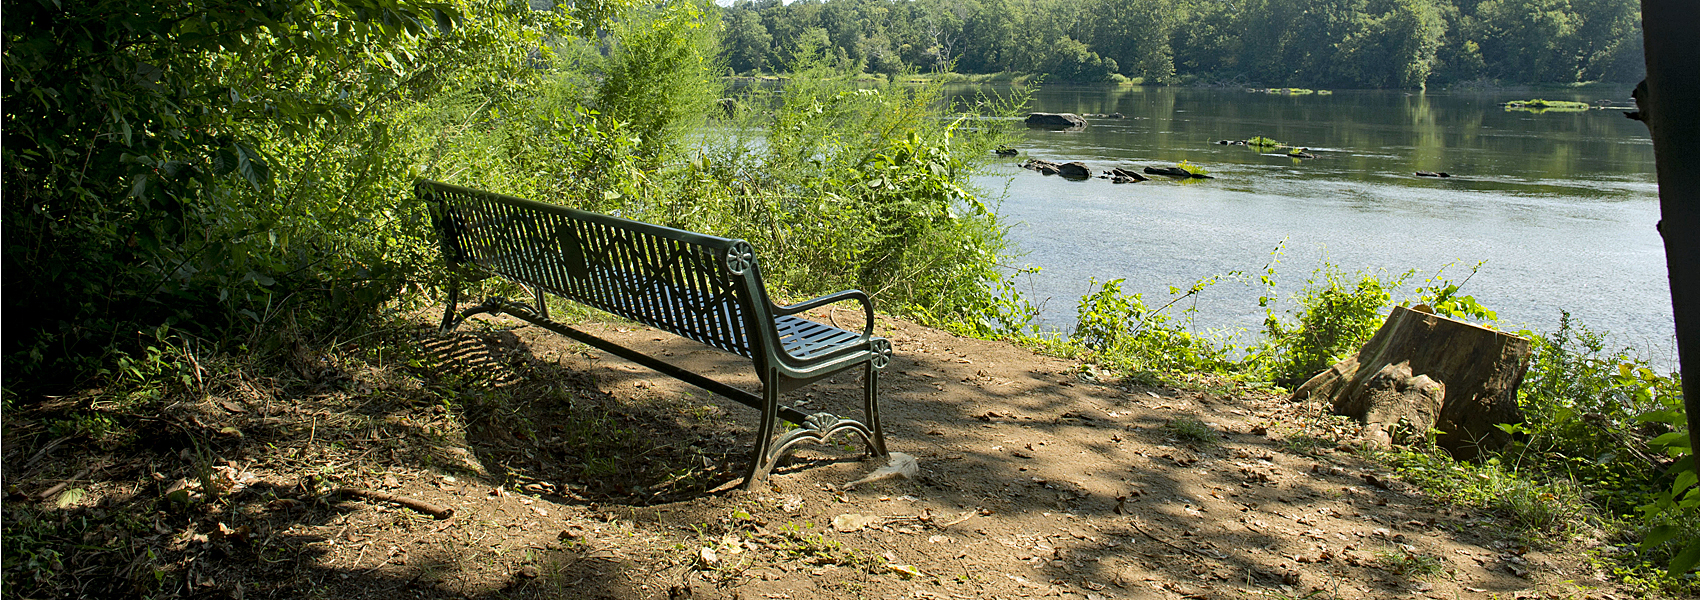 A bench sits in a viewing area alongside the Potomac River